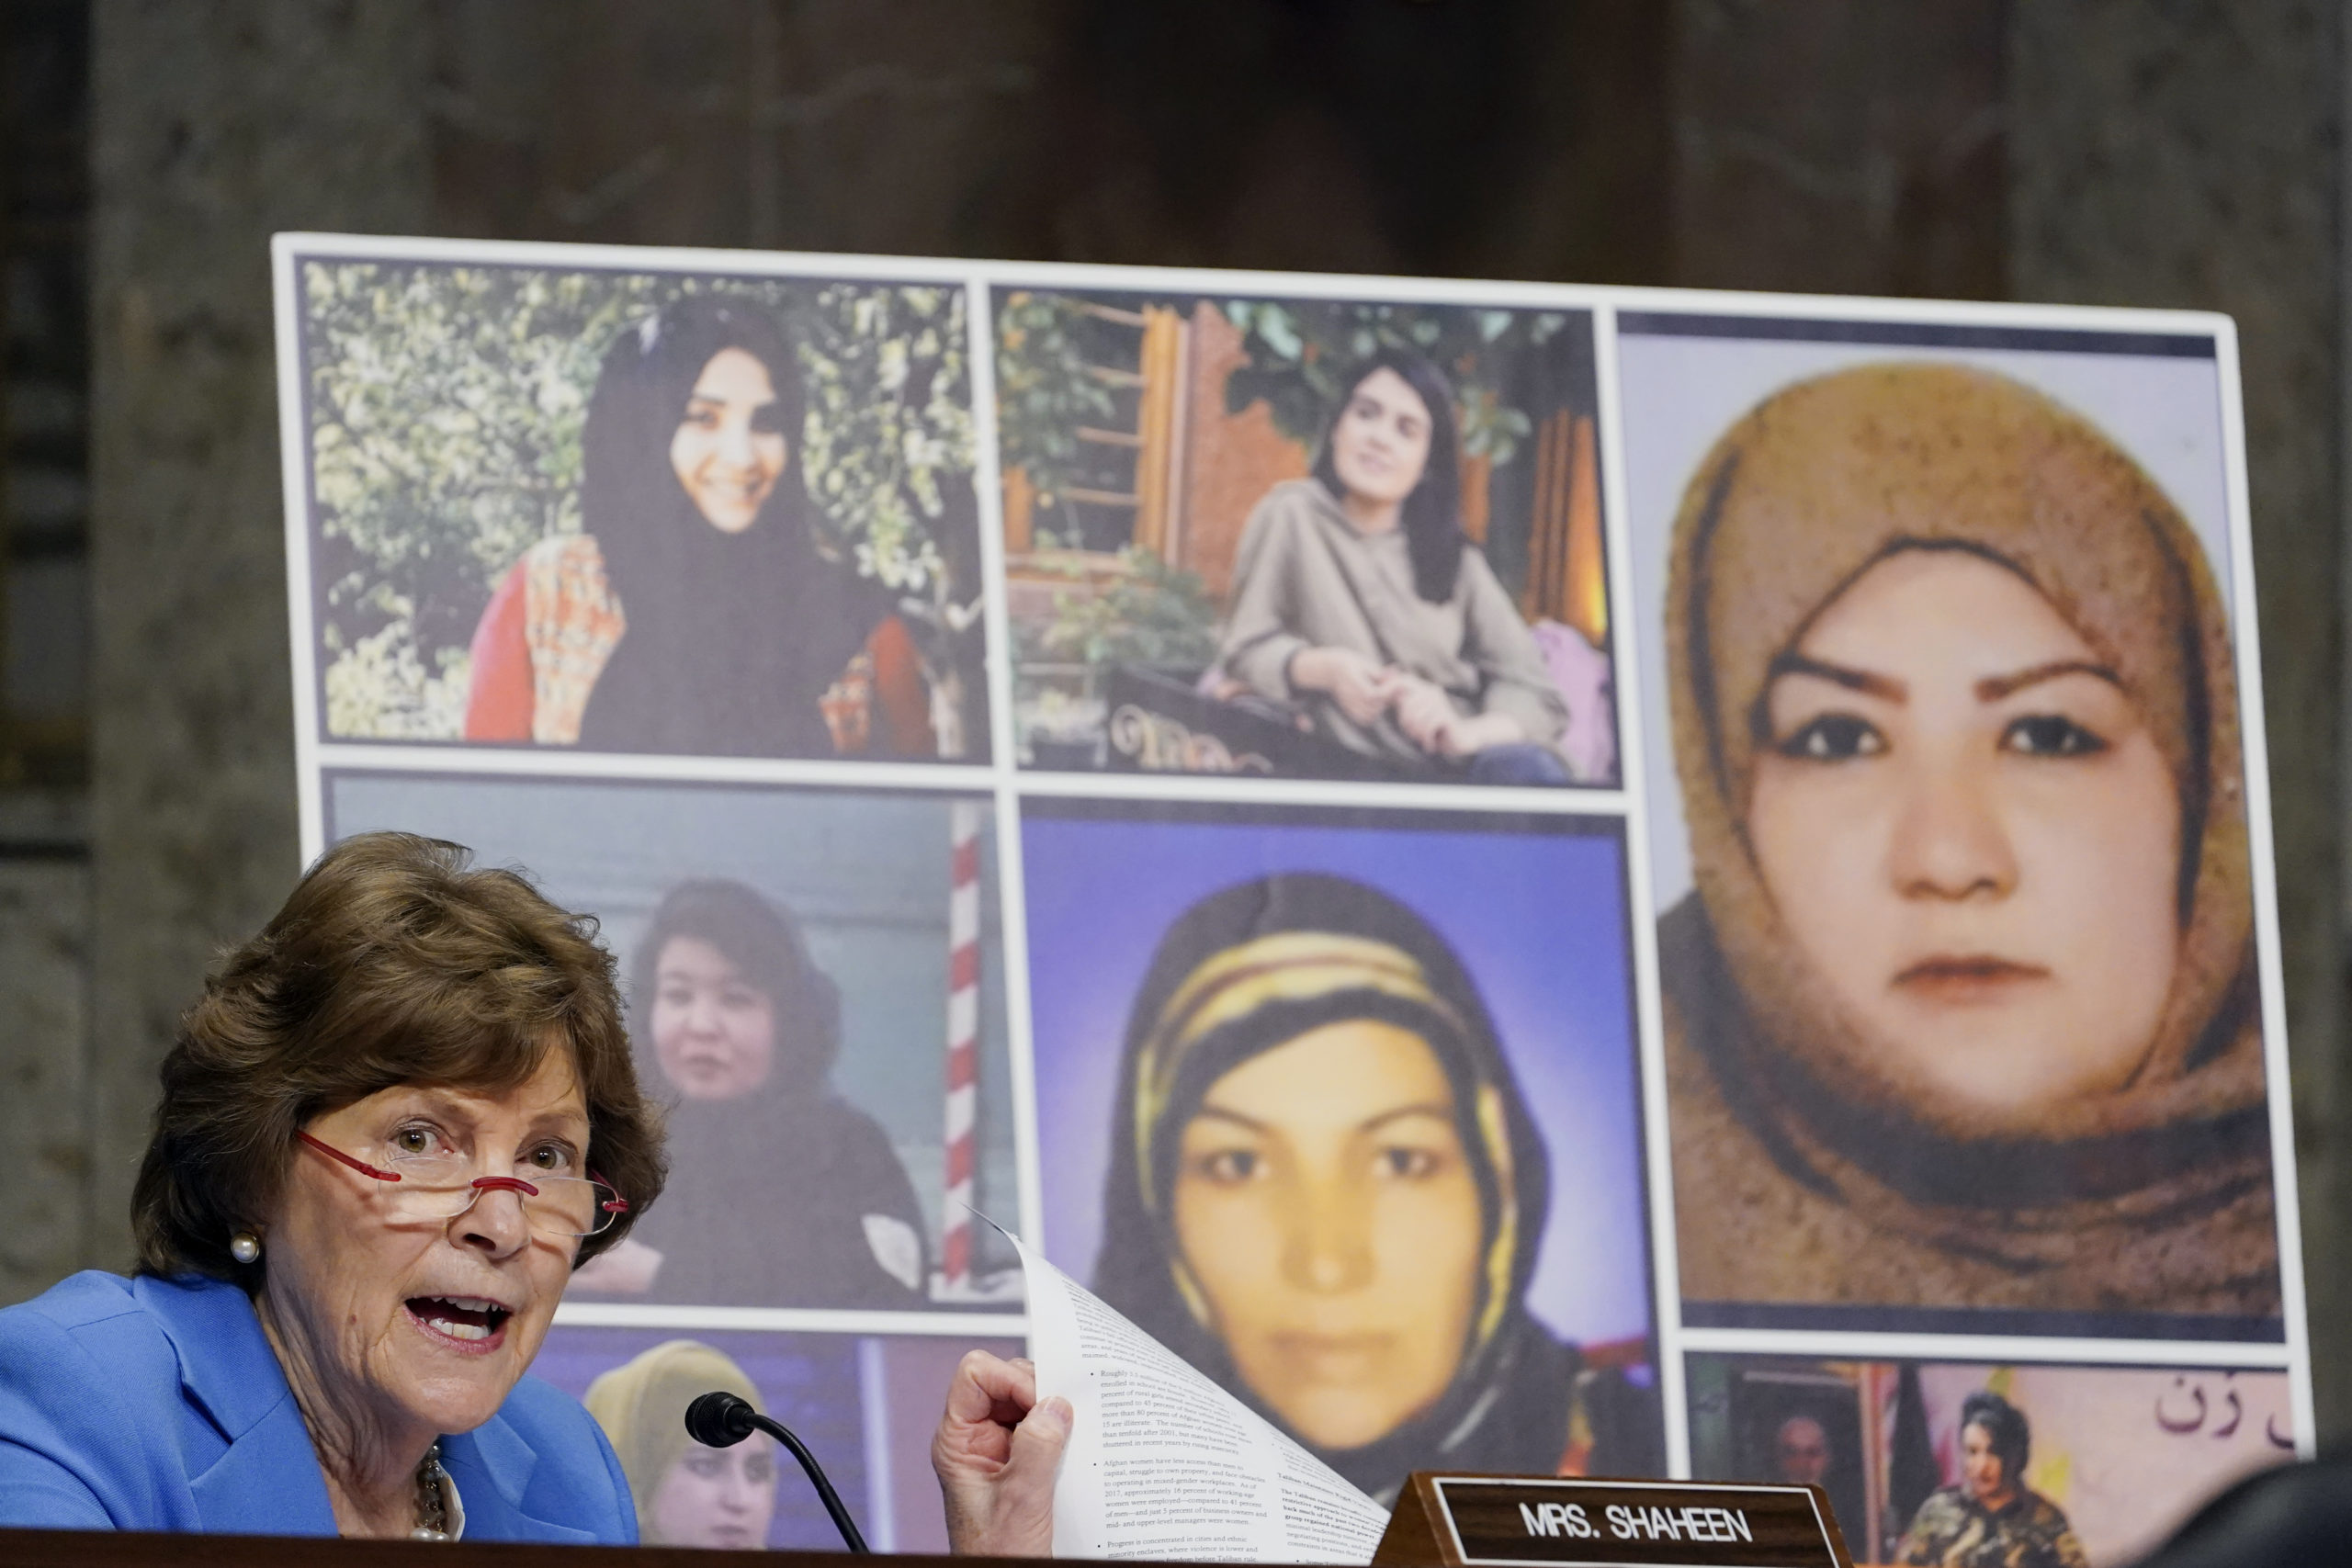 U.S. Sen. Jeanne Shaheen (D-NH) talks about women in Afghanistan, including the seven pictured women who were killed in Afghanistan, as she questions Zalmay Khalilzad, special envoy for Afghanistan Reconciliation, while he testifies before the Senate Foreign Relations Committee on April 27, 2021 in Washington, DC. (Photo by Susan Walsh-Pool/Getty Images)